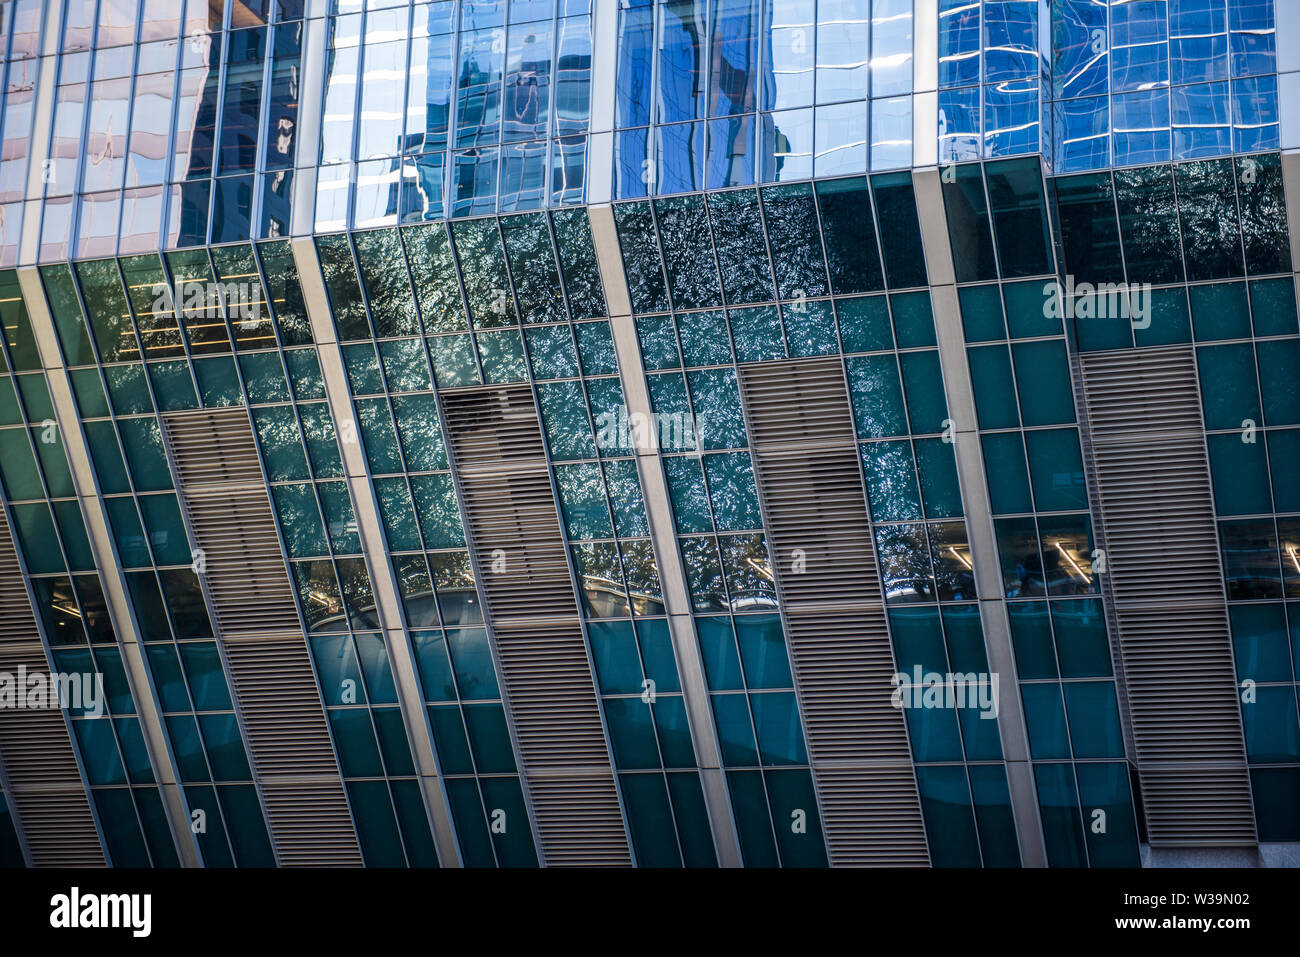 The Chicago river reflected on the glass paneling of the skyscraper at 150 North Riverside - Stock Image